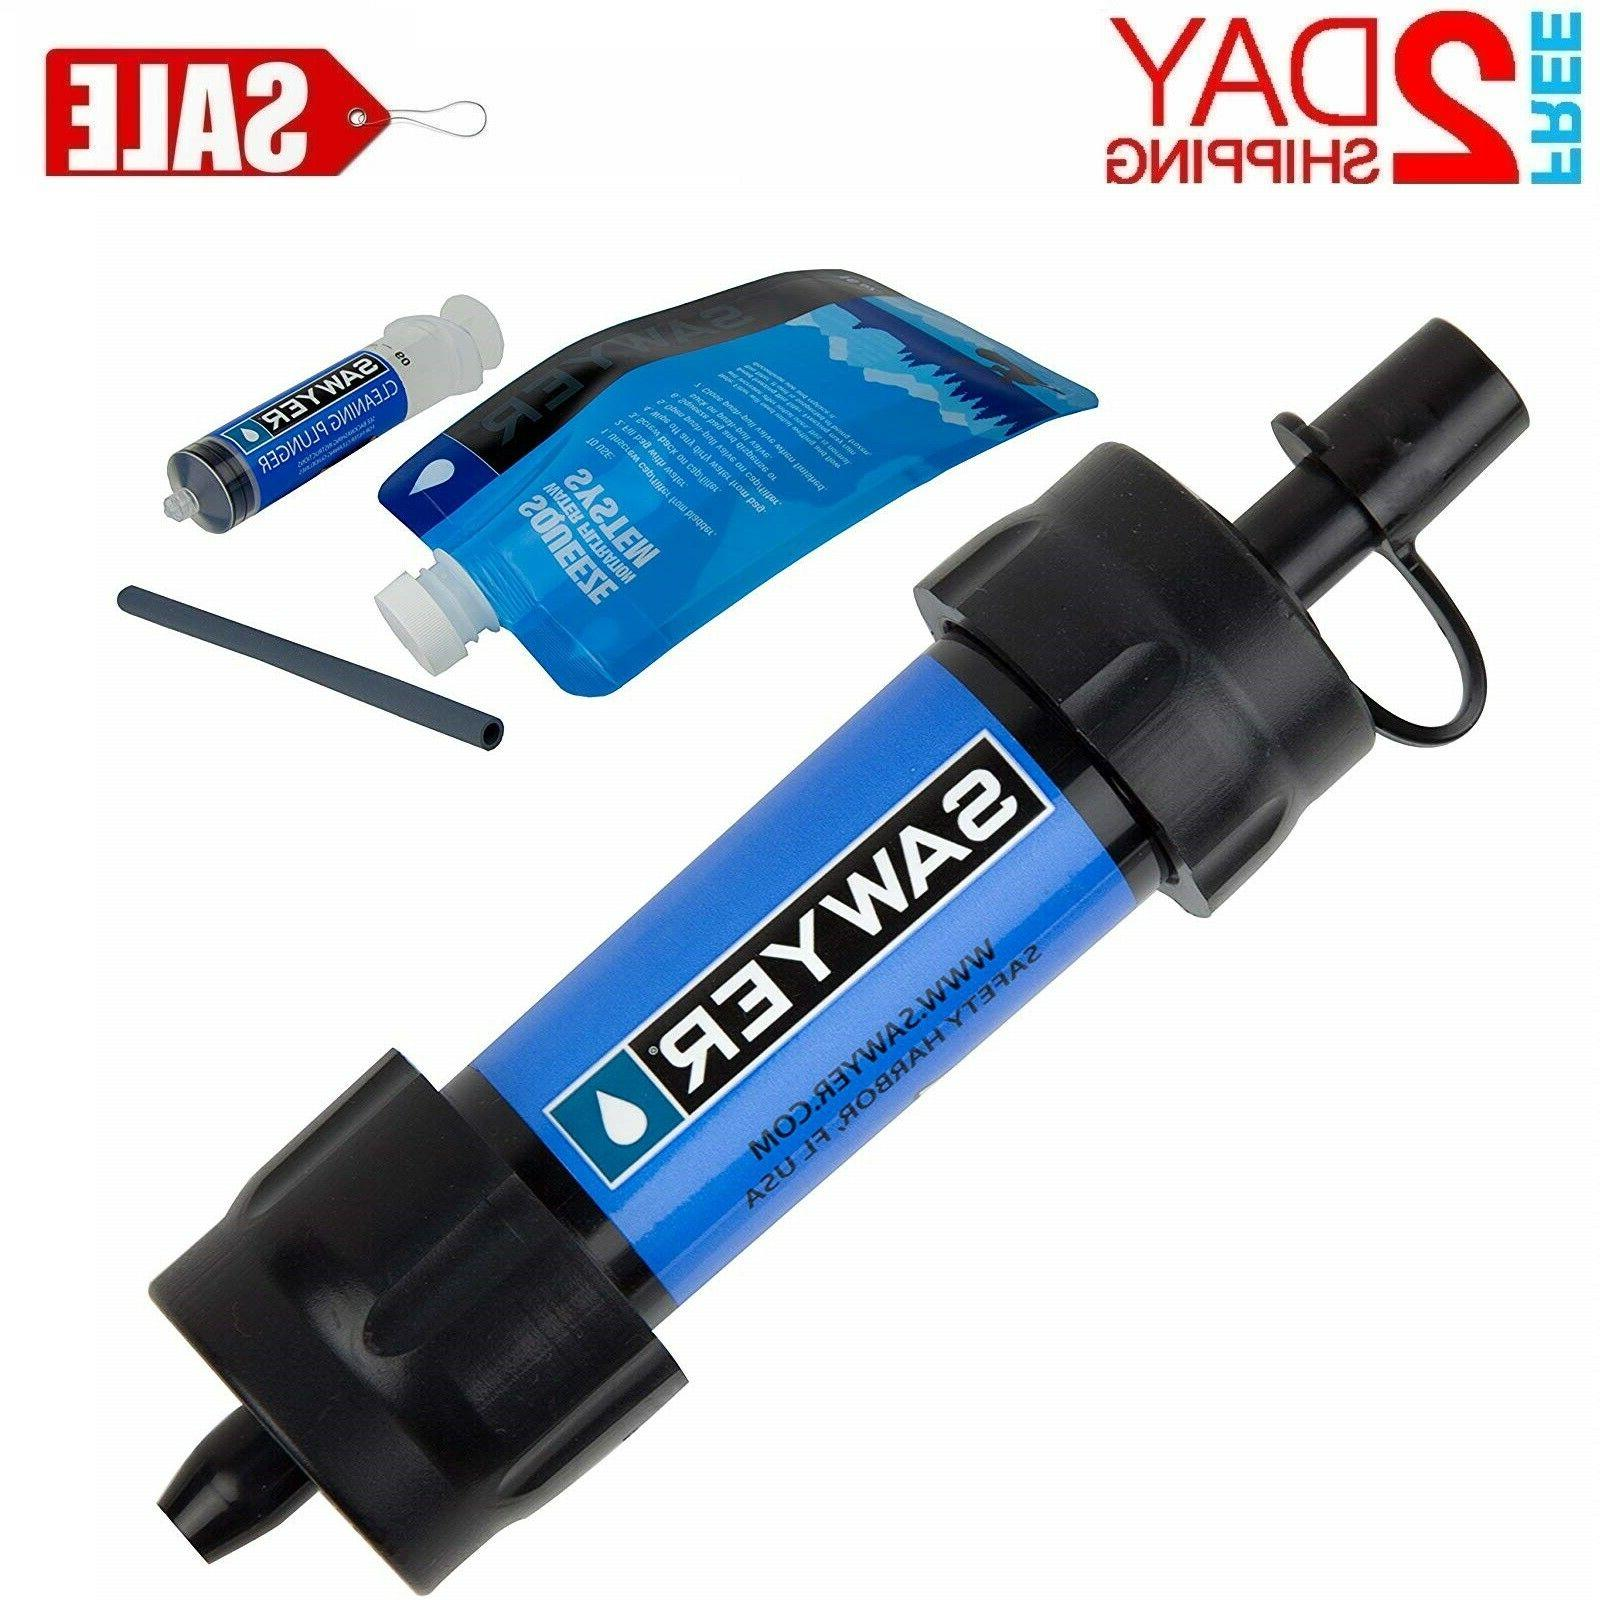 products sp128 mini water filtration system single